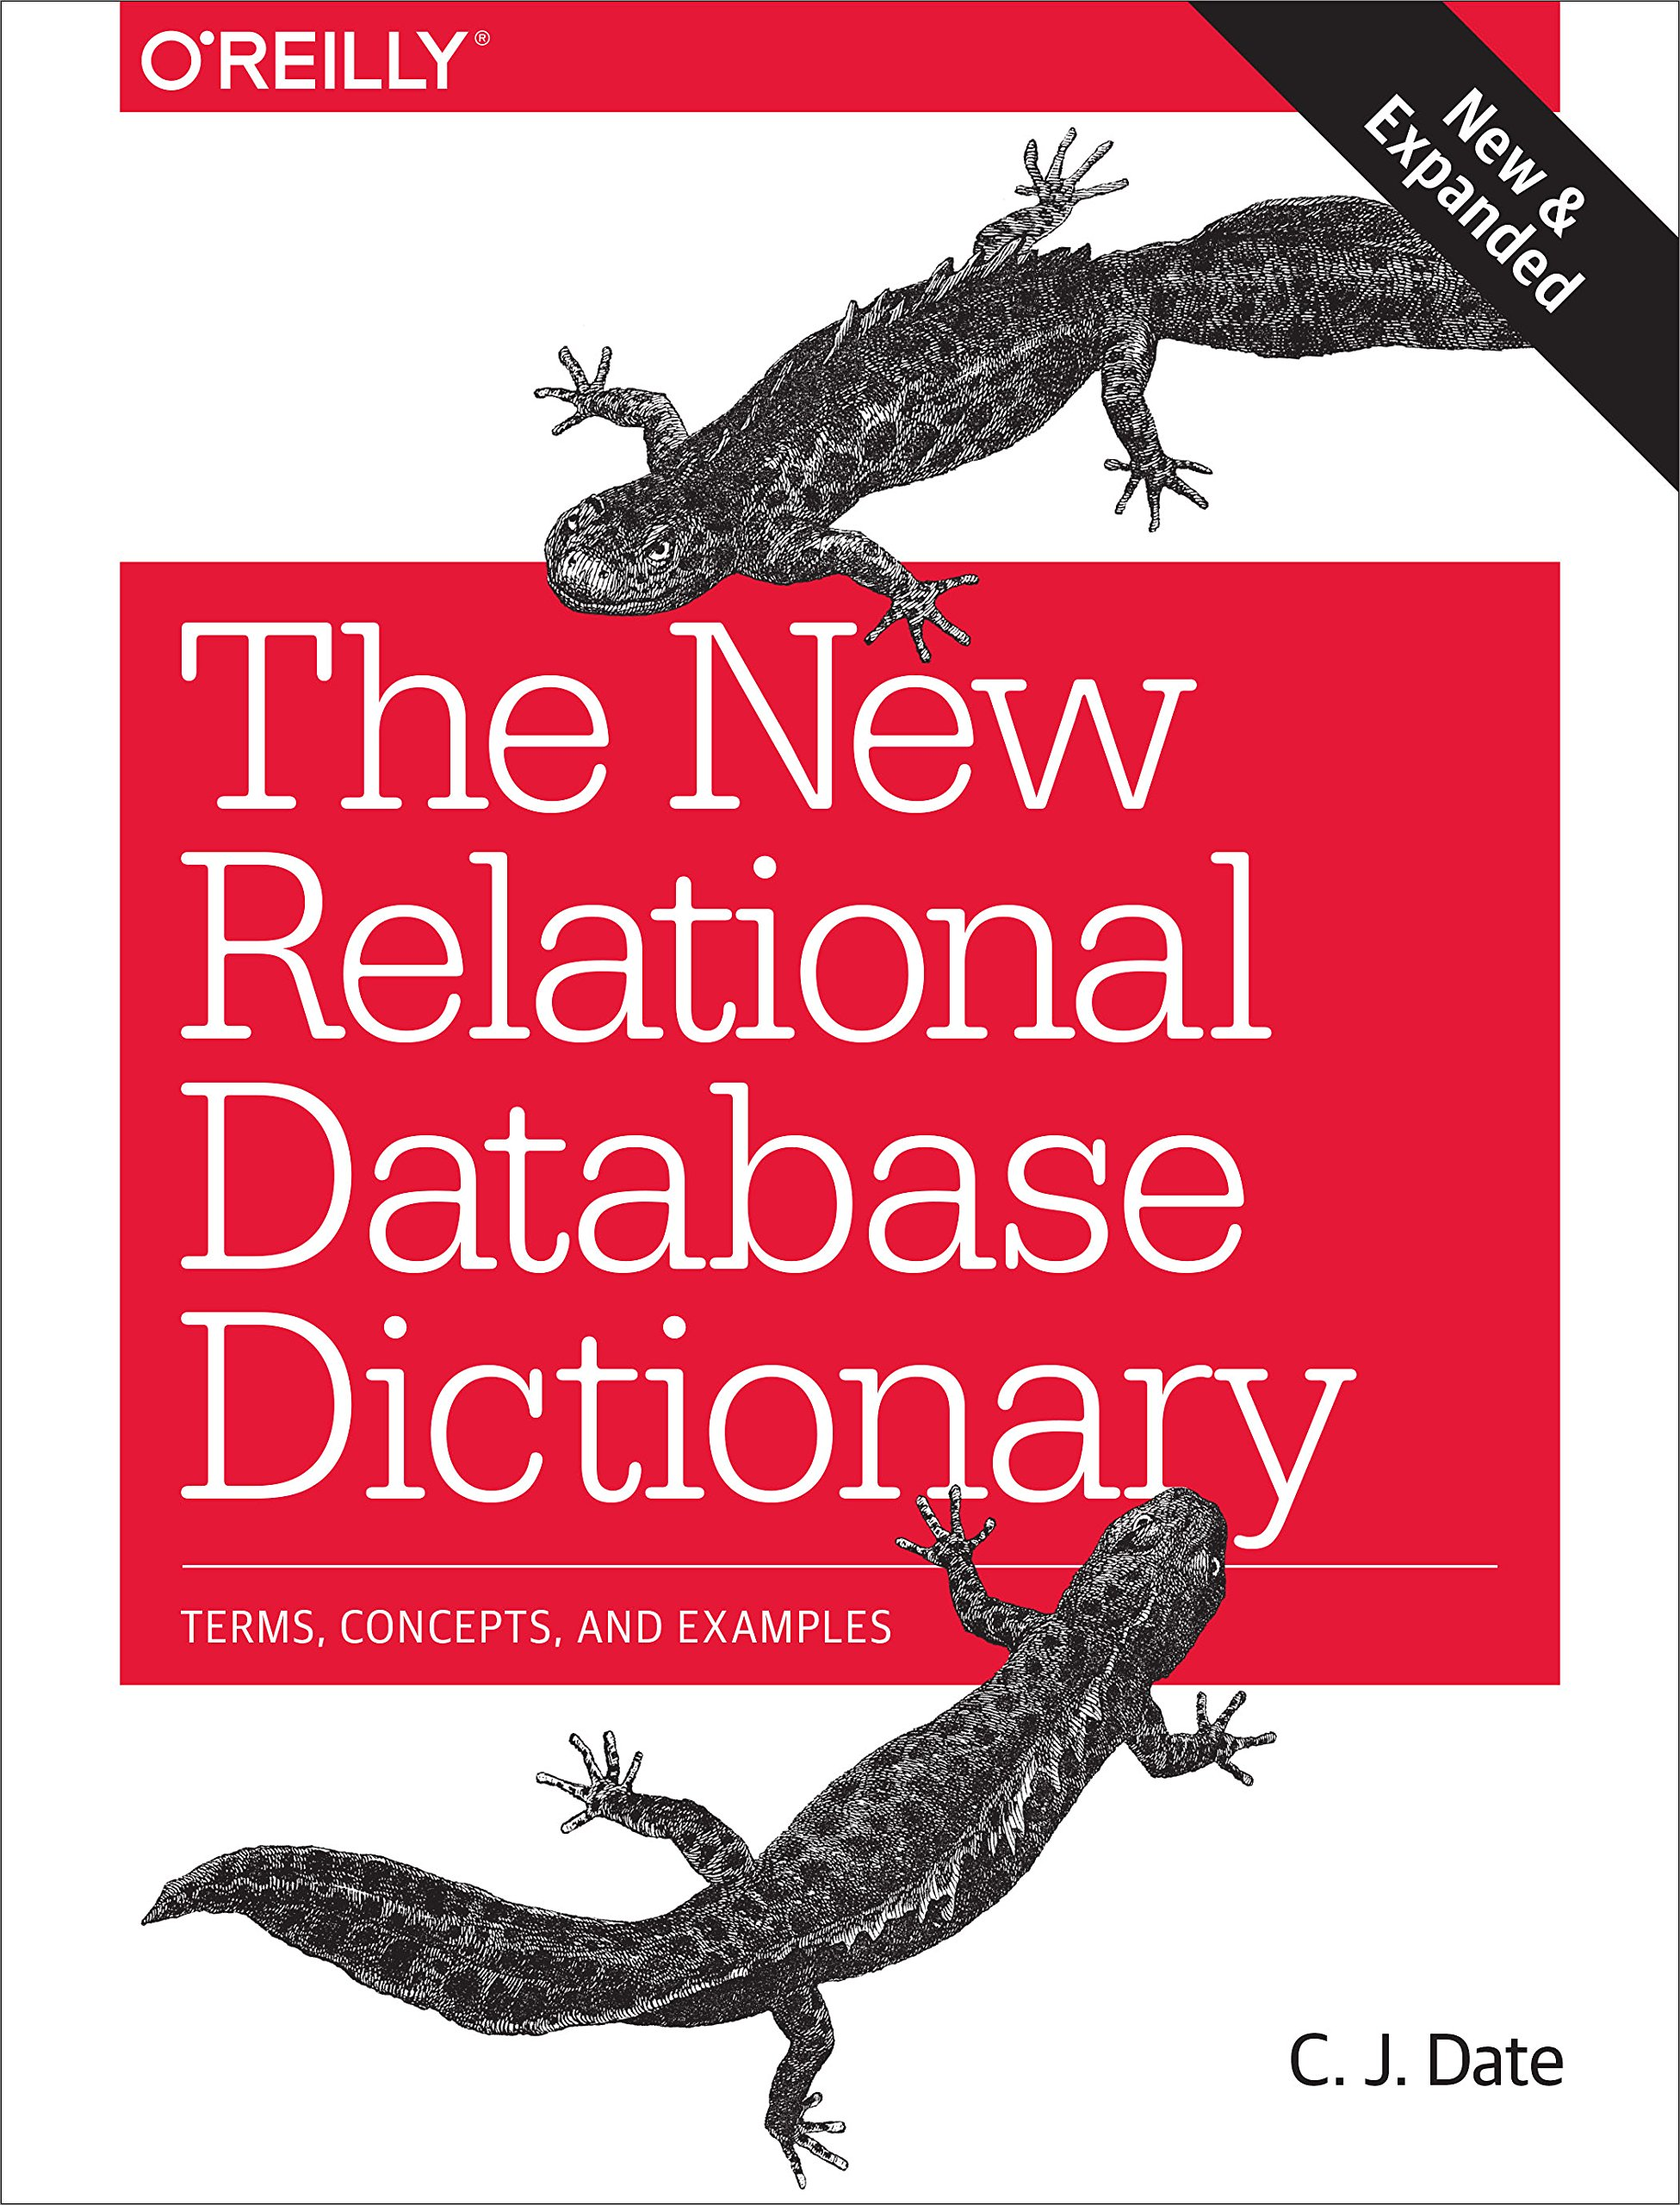 Image OfThe New Relational Database Dictionary